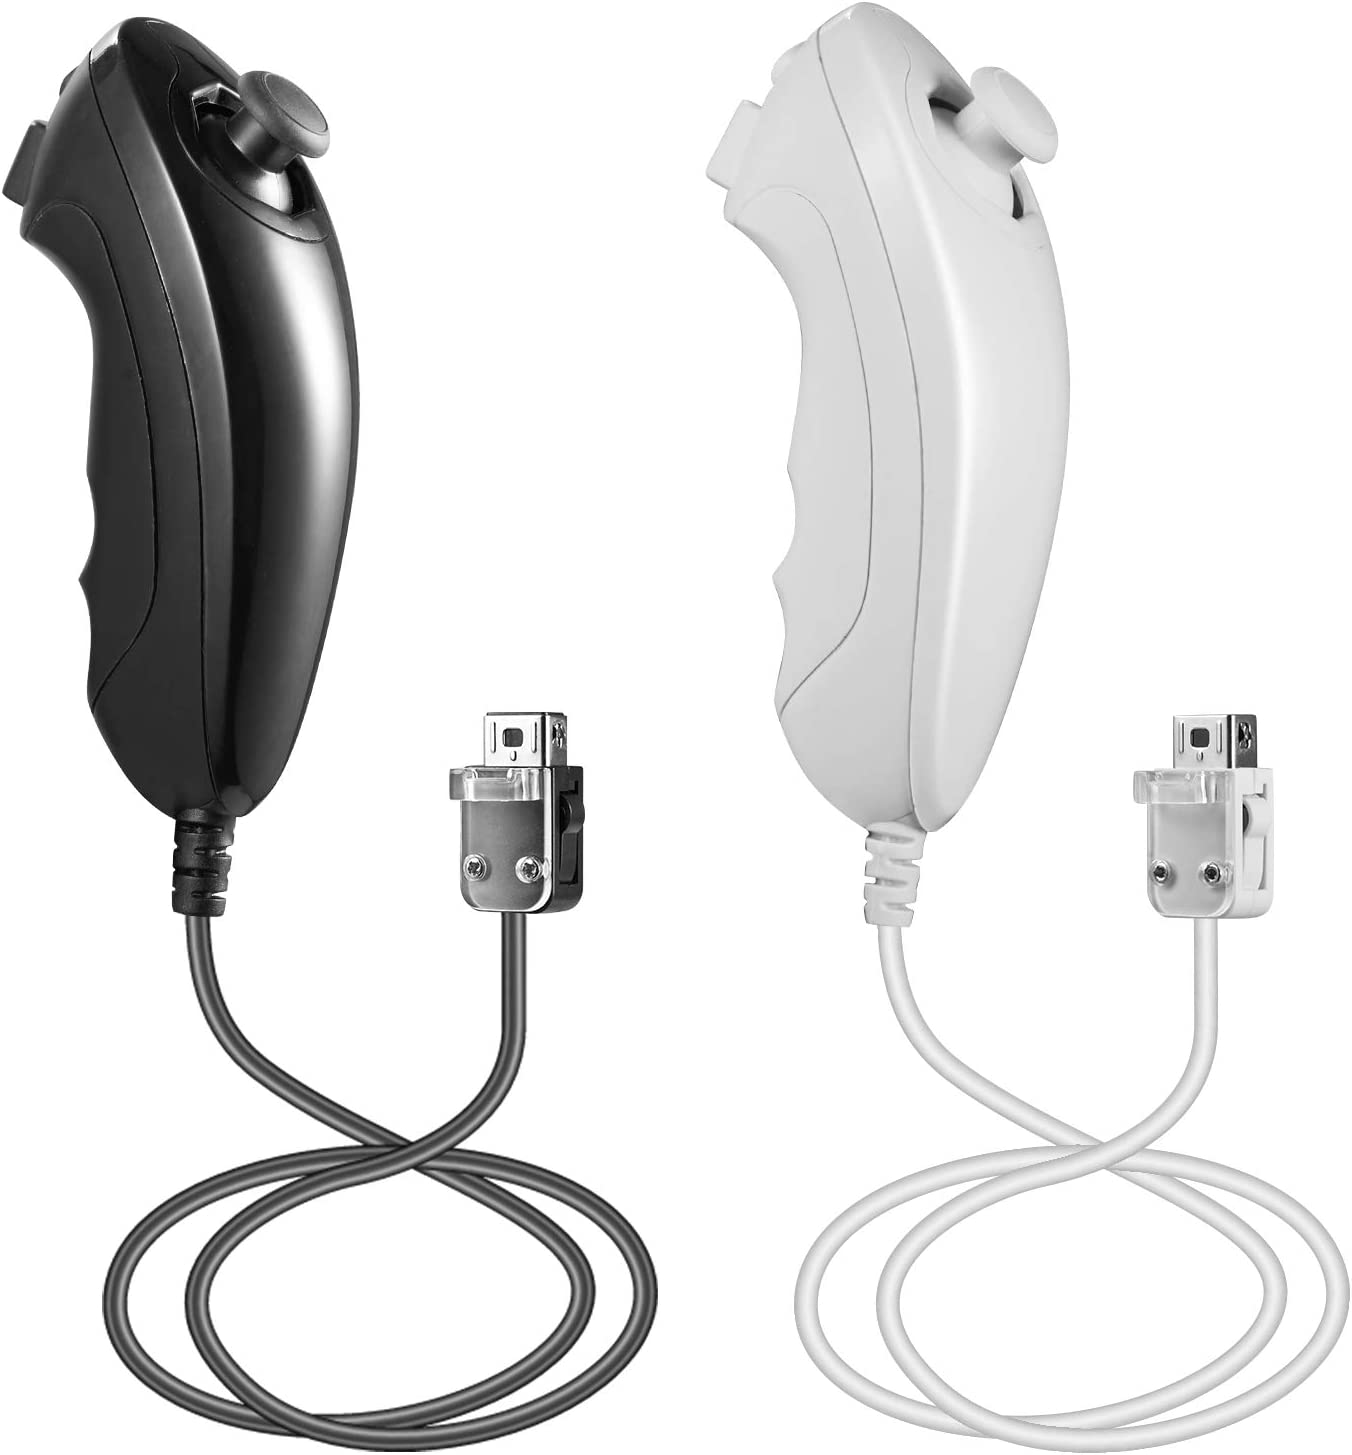 LUXMO Wii Free shipping anywhere in the nation Nunchuck Bargain Controller Pack Gamep Joystick 2